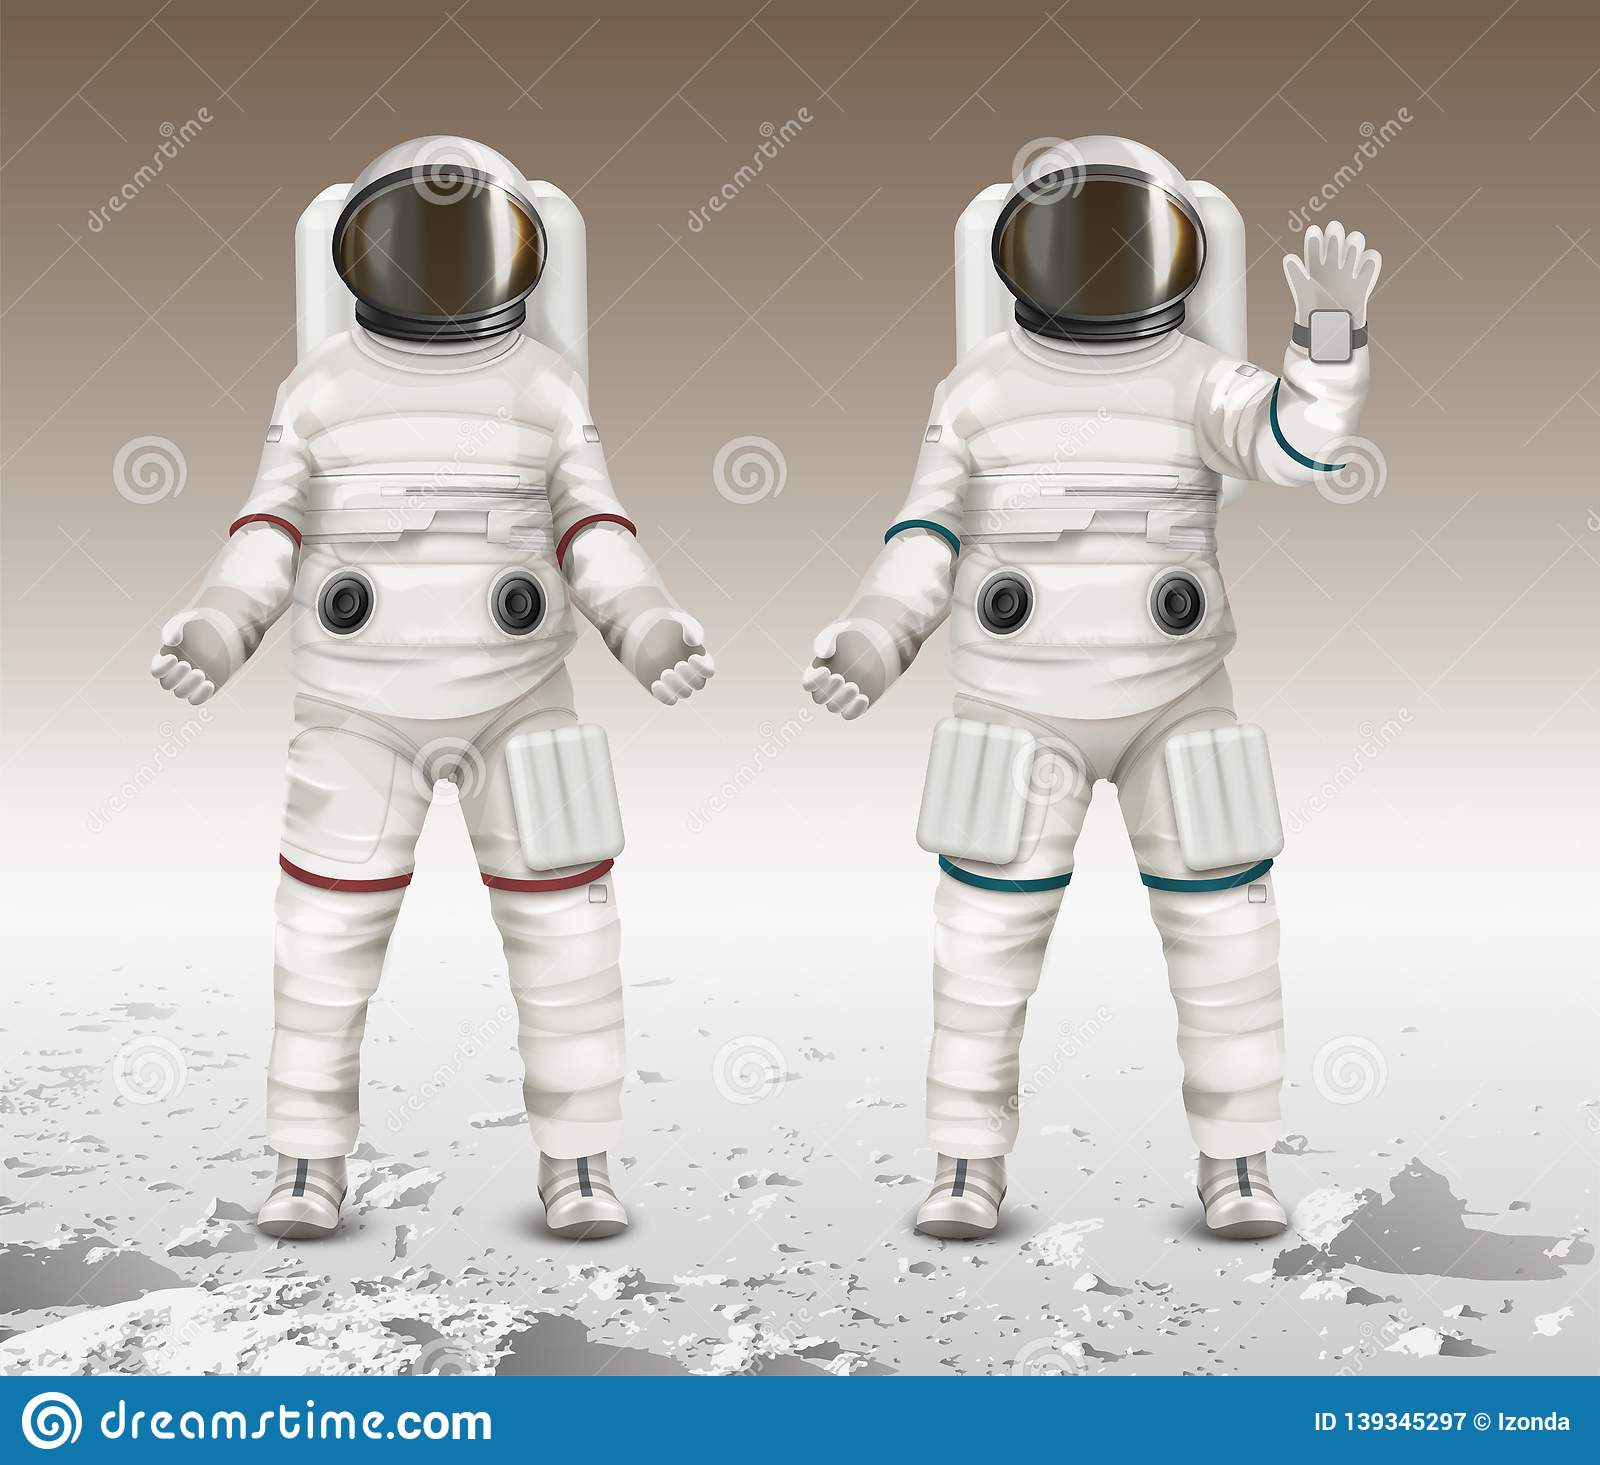 Vector illustration of two astronauts wearing space suits and walk exploring mars on moon